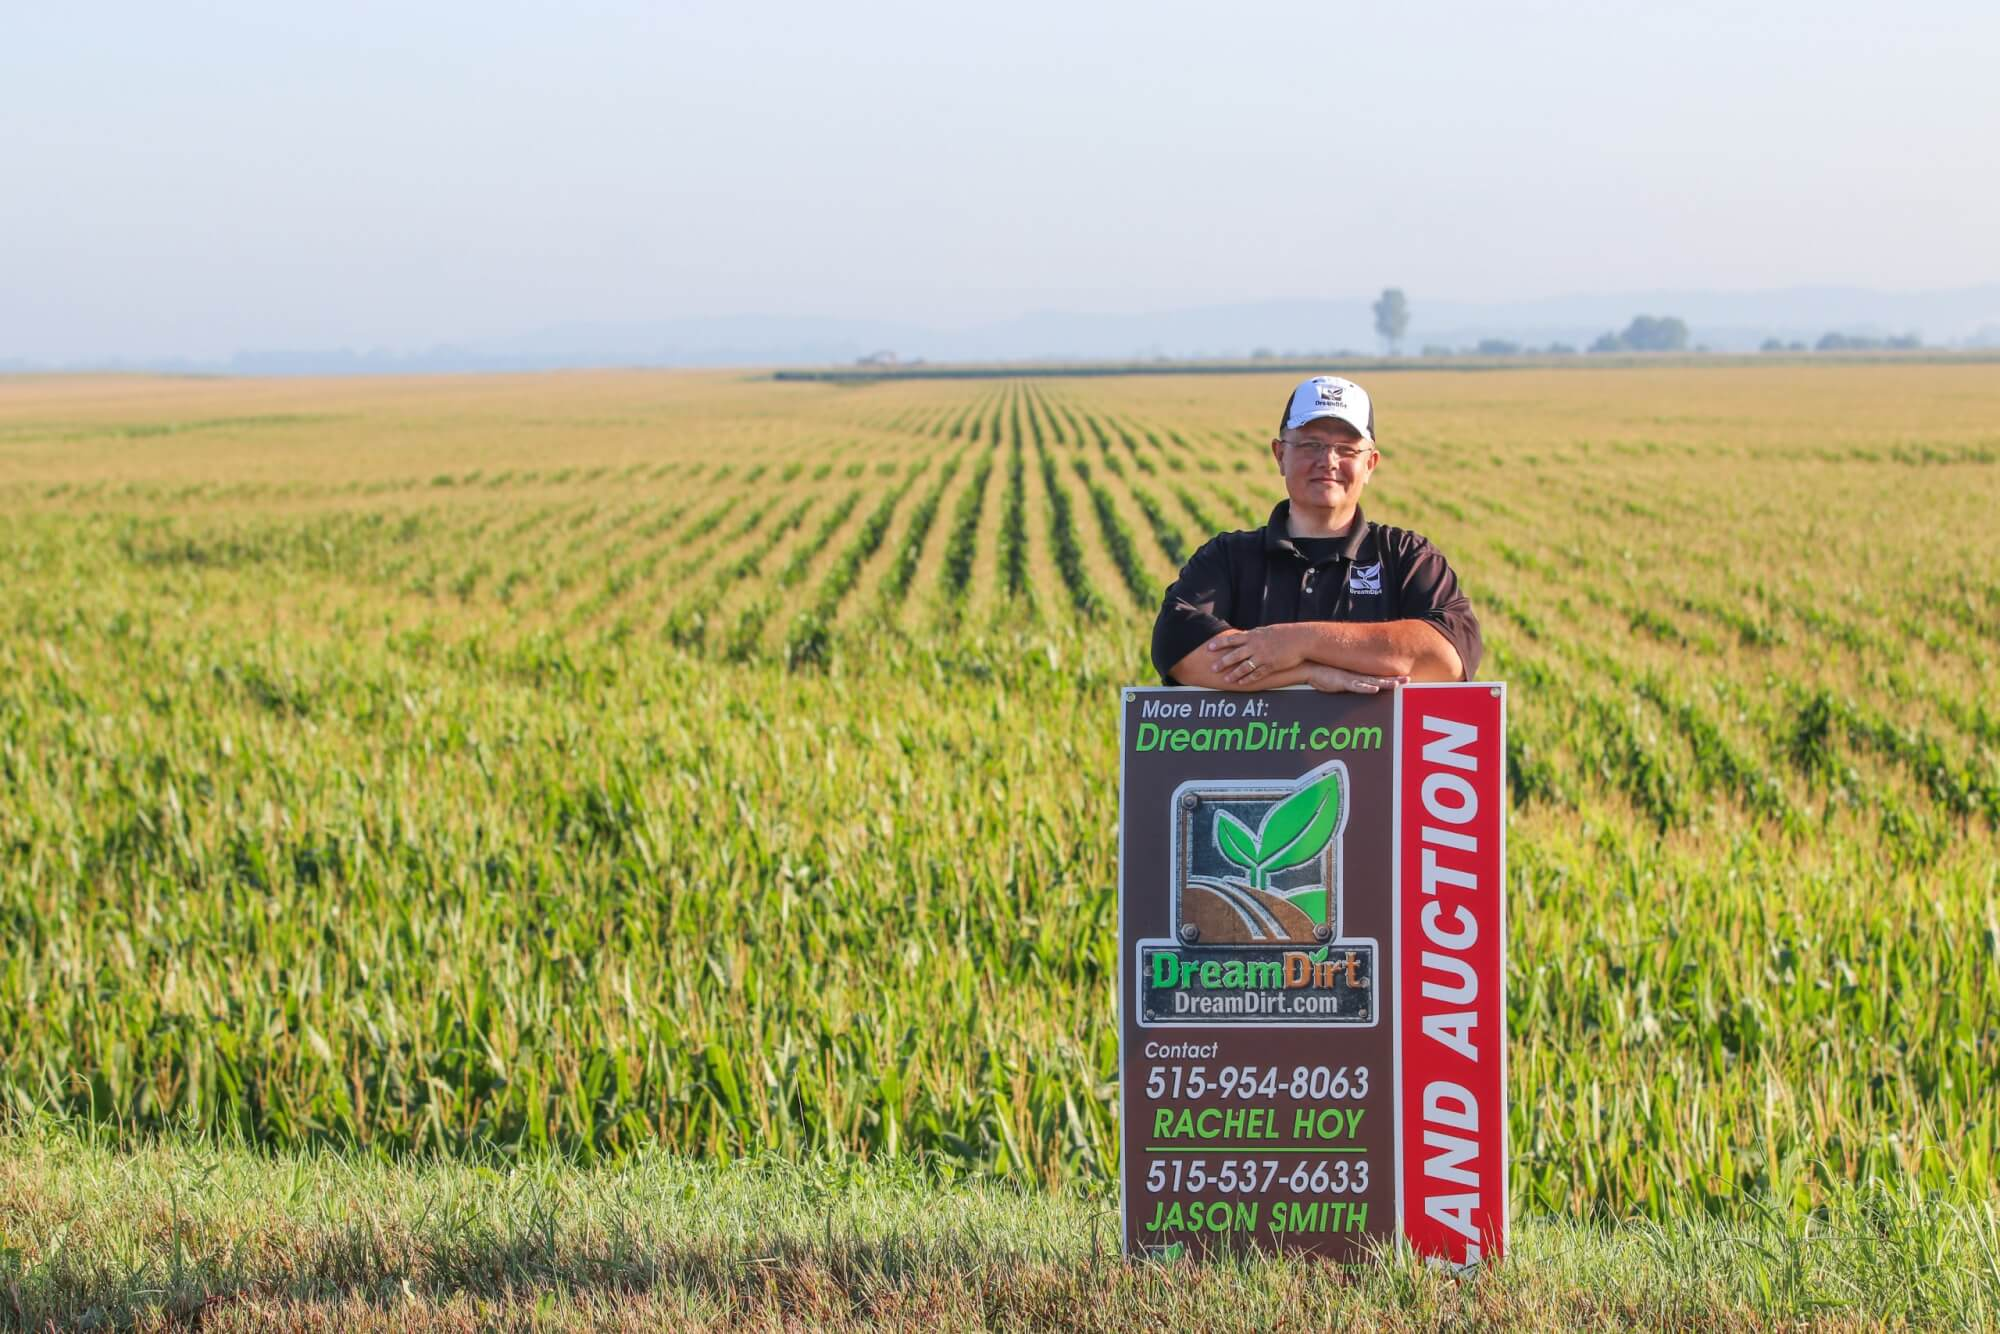 A DreamDirt auctioneer poses in a field with a Land Auction sign